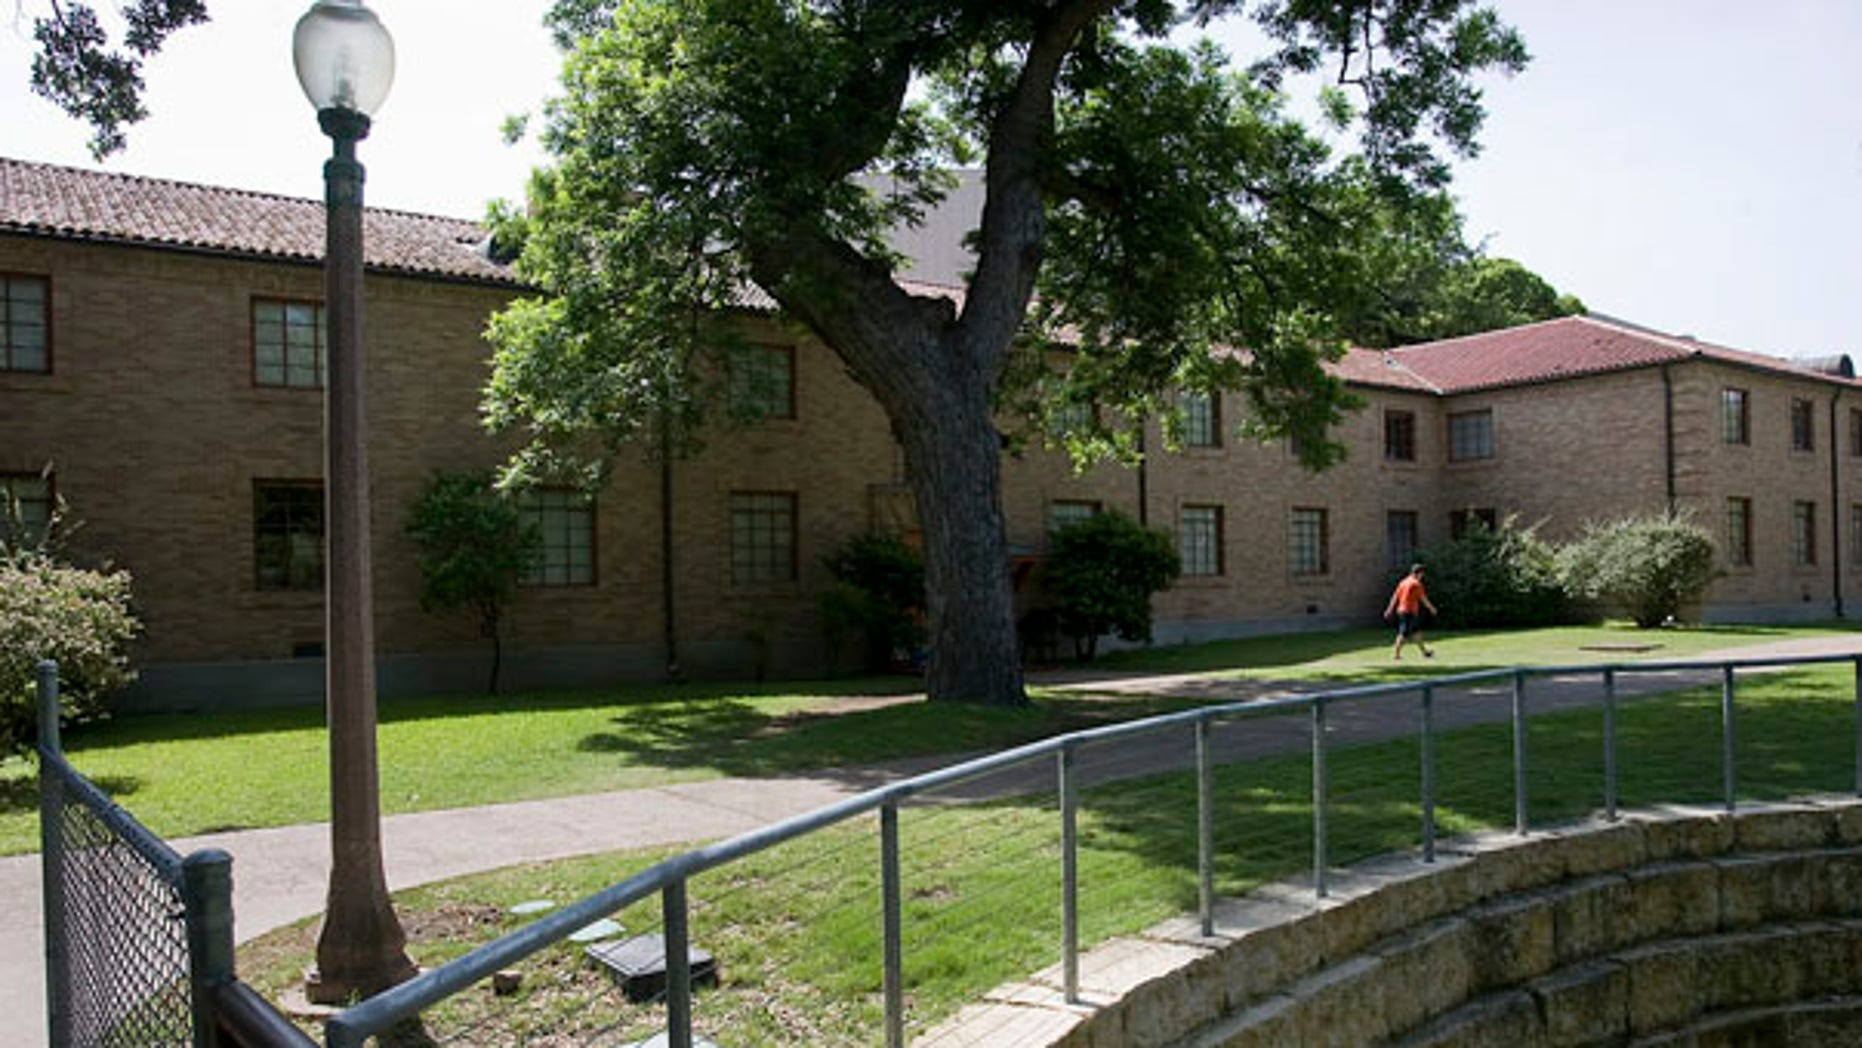 May 18: Simkins Hall, a University of Texas dormitory, has been renamed Creekside Hall to scrub the name of a former professor who was a Ku Klux Klan organizer.